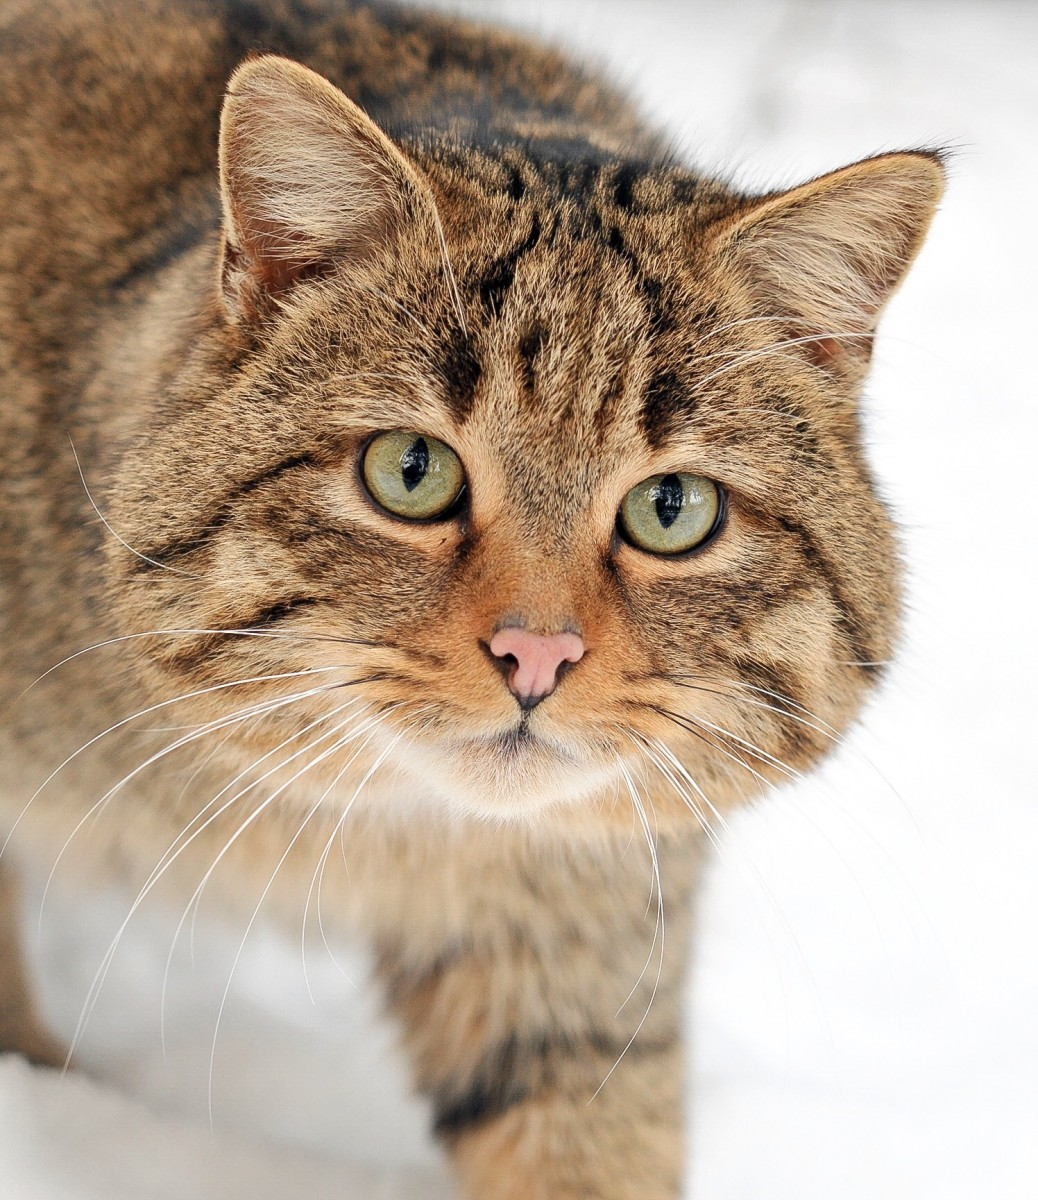 A European wildcat, which belongs to the same species as the Scottish wildcat and is sometimes classified in the same subspecies as well